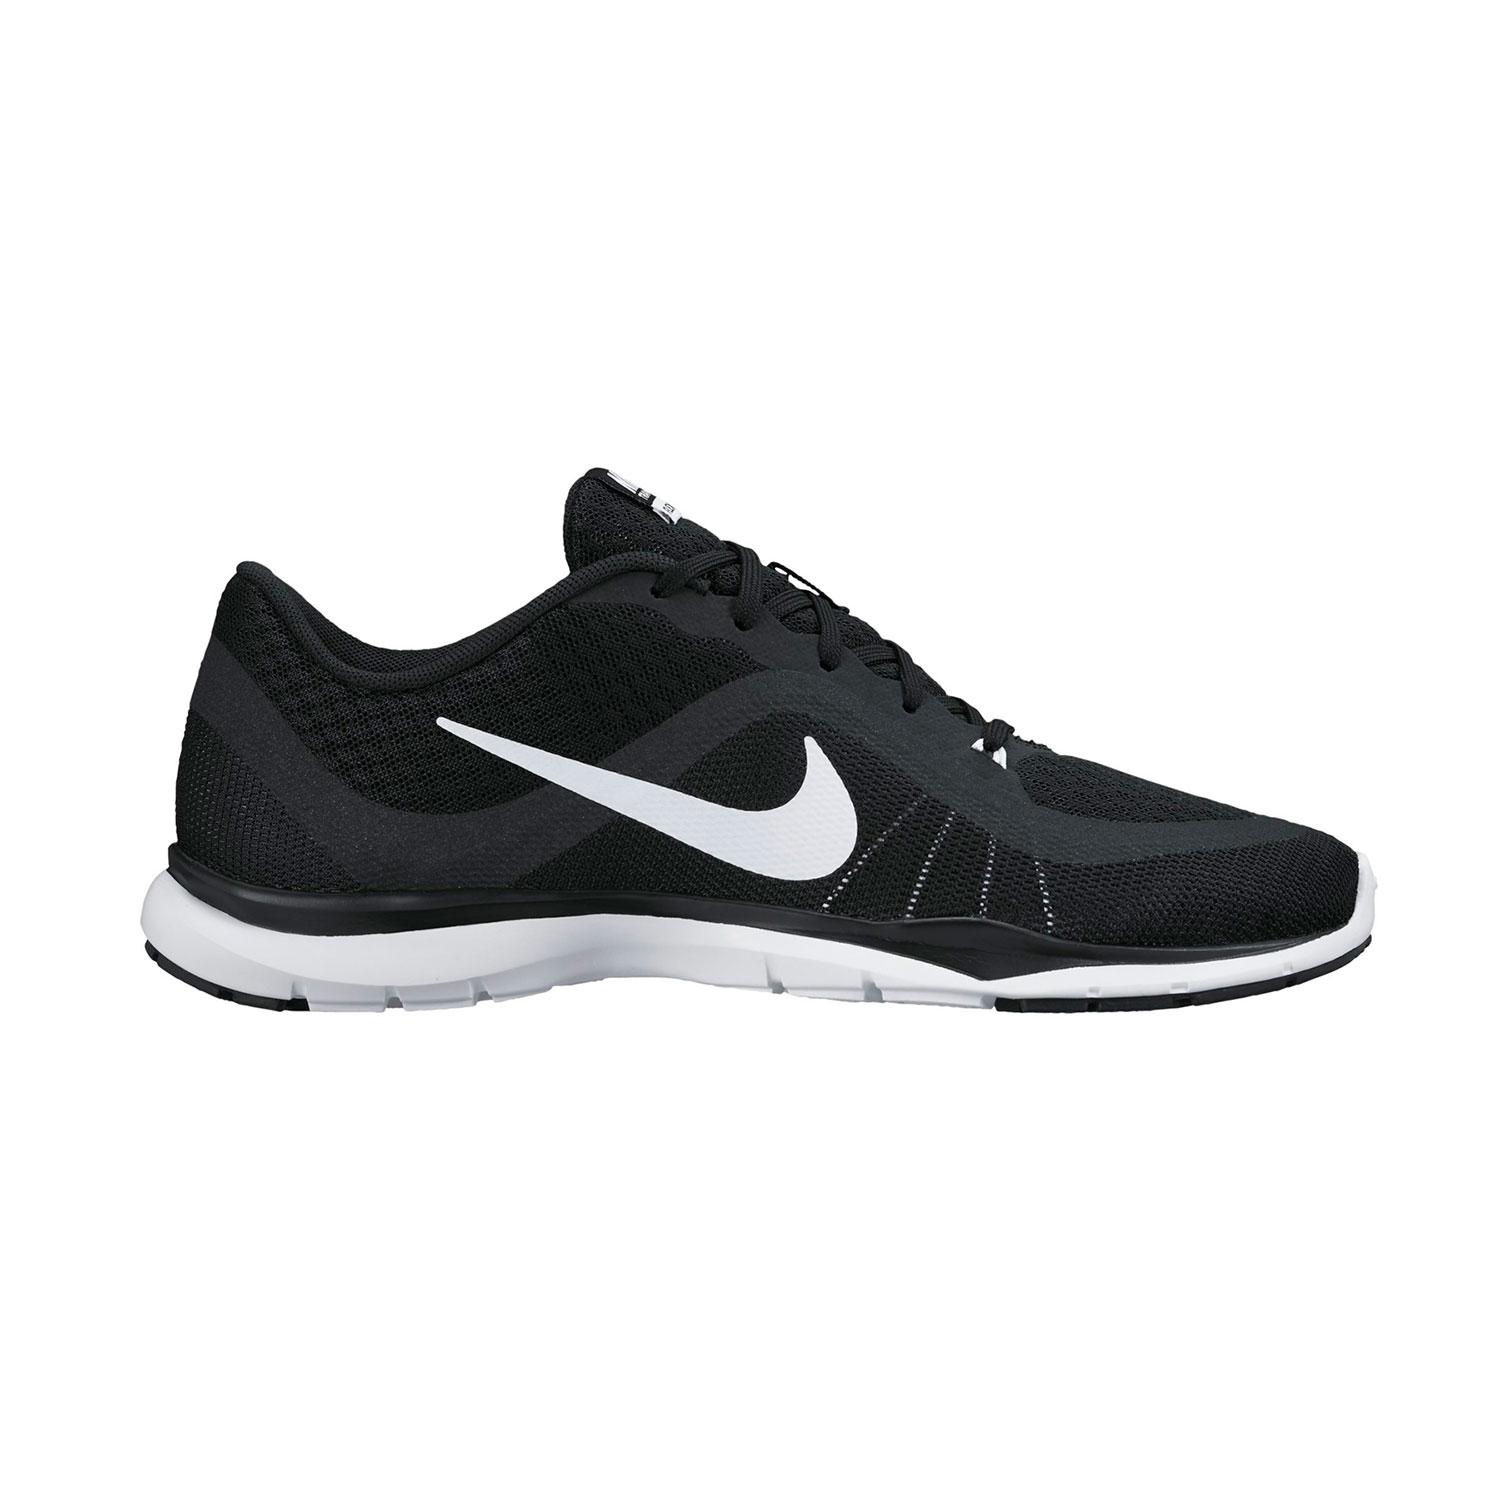 Nike Womens Flex Trainer 6 Training Shoe